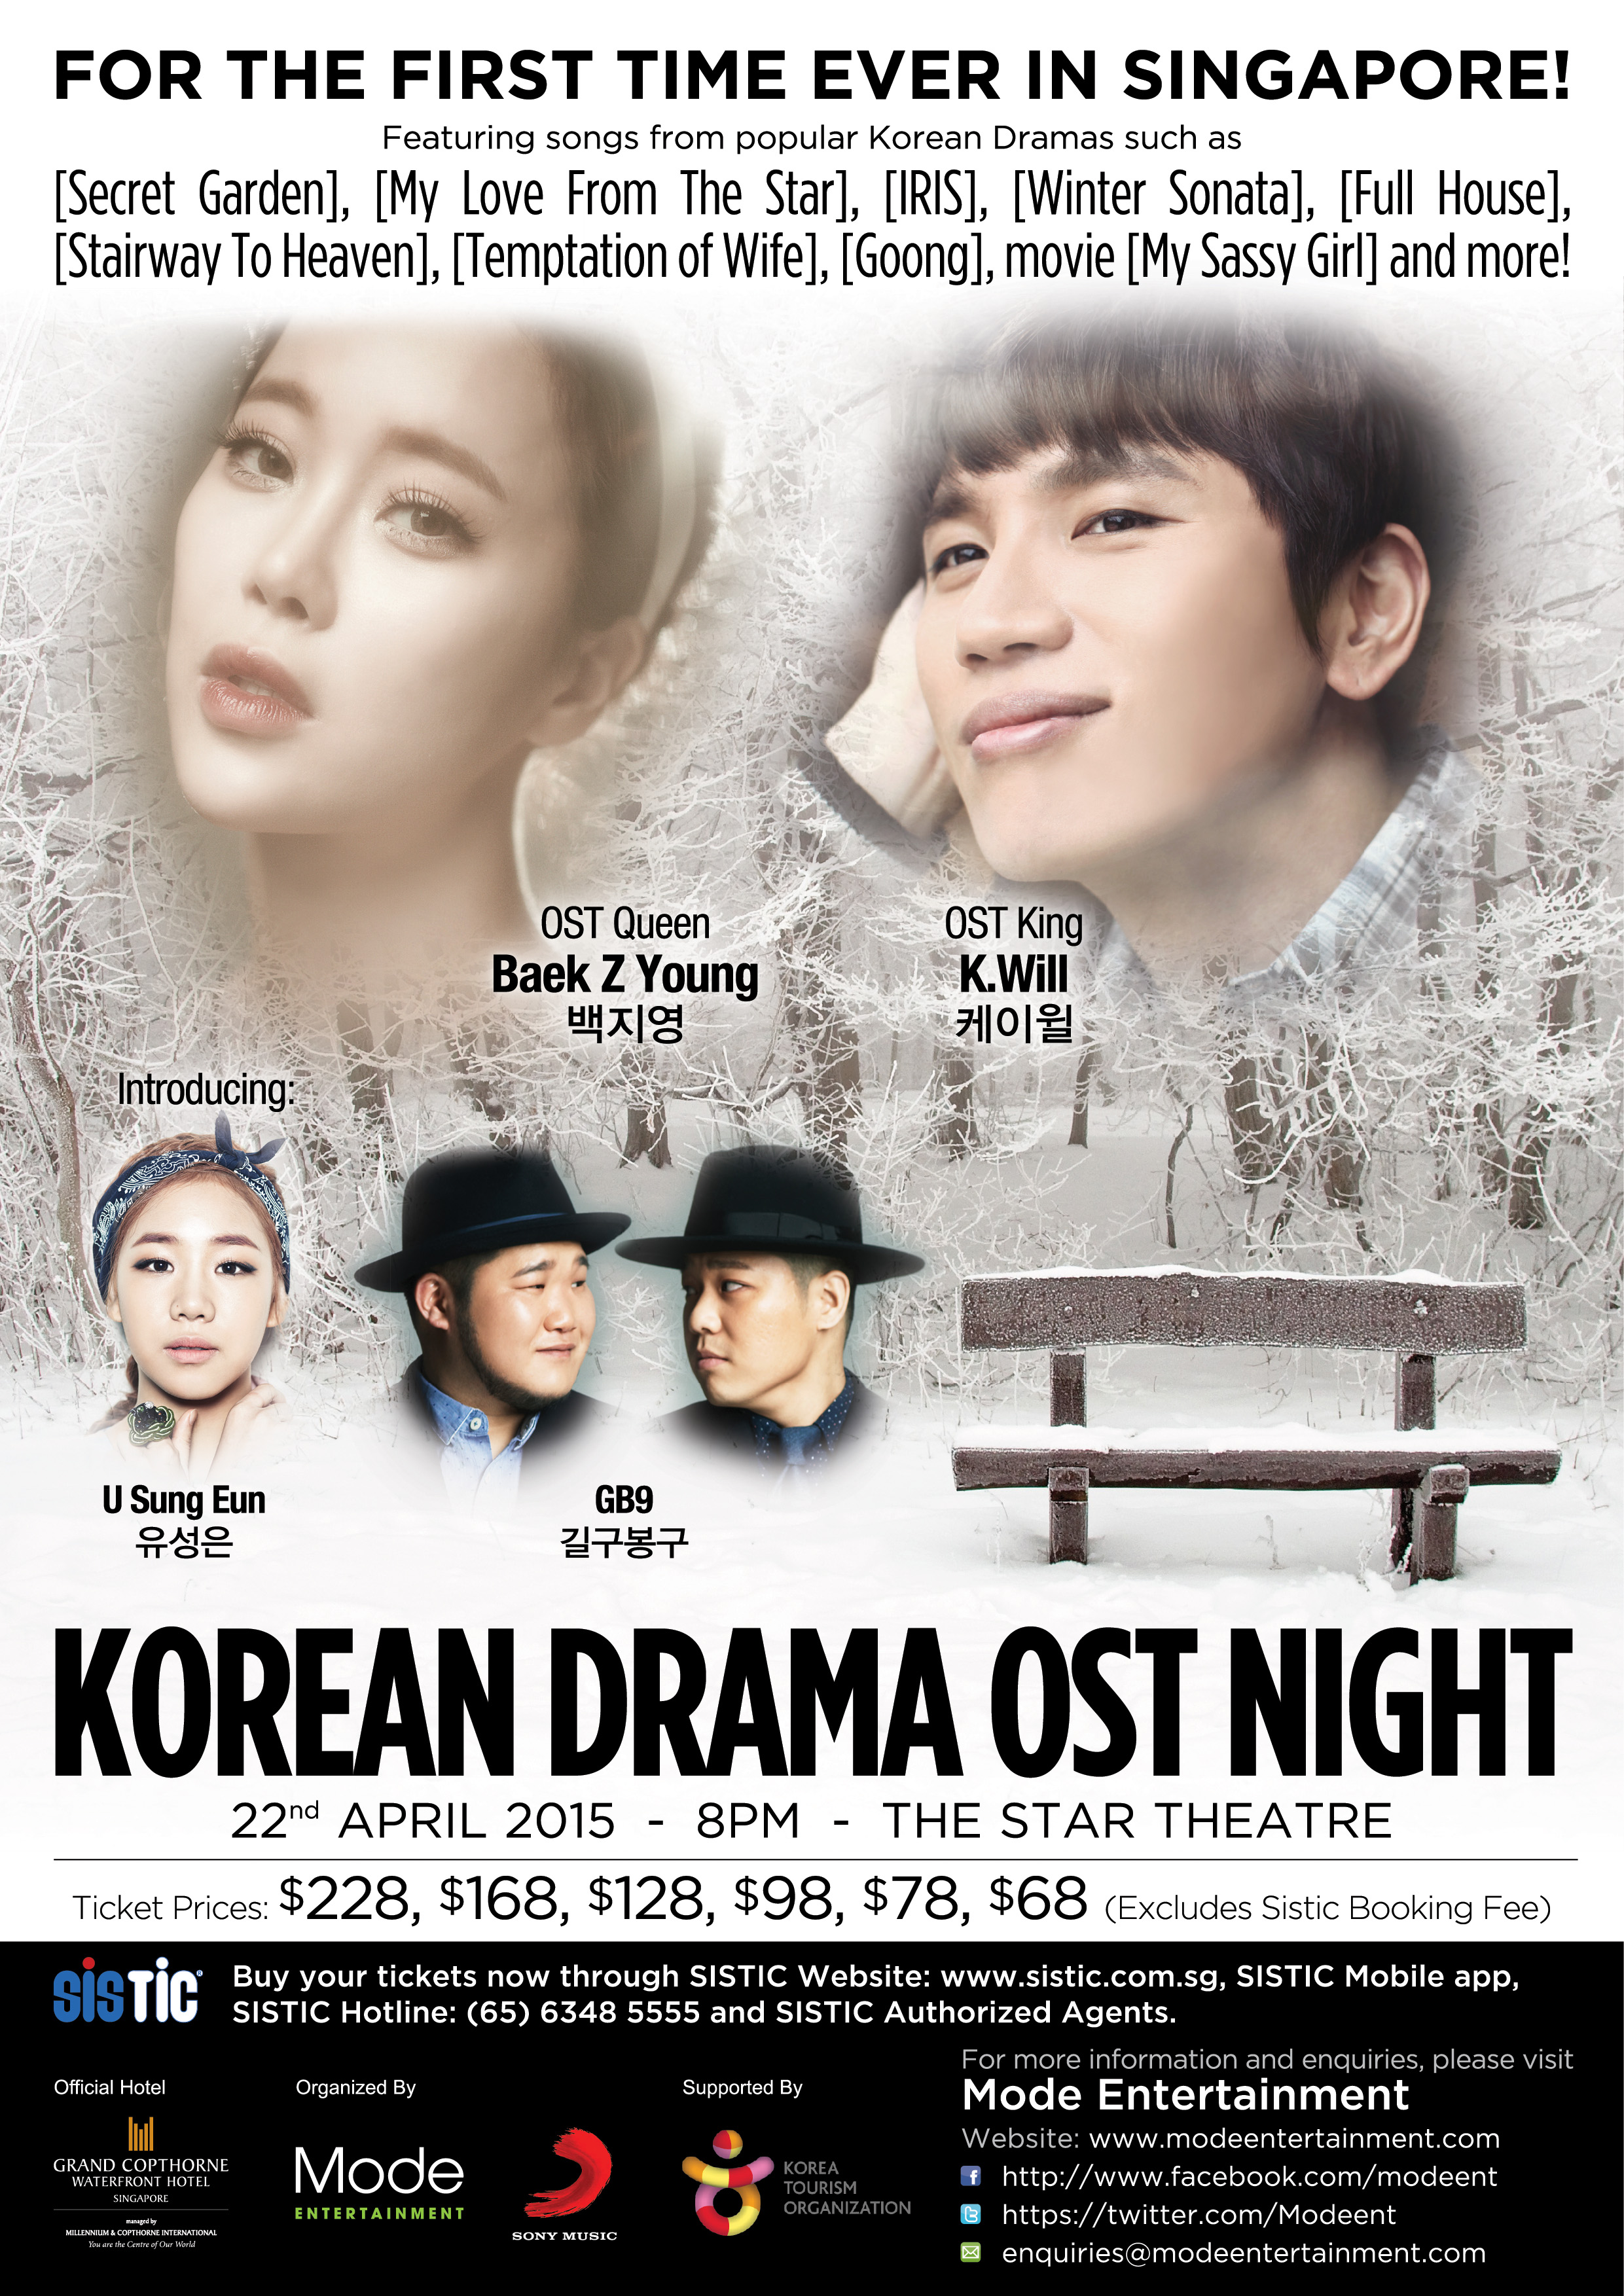 Baek Ji Young And Kwill To Serenade Popular Osts In Singapore For